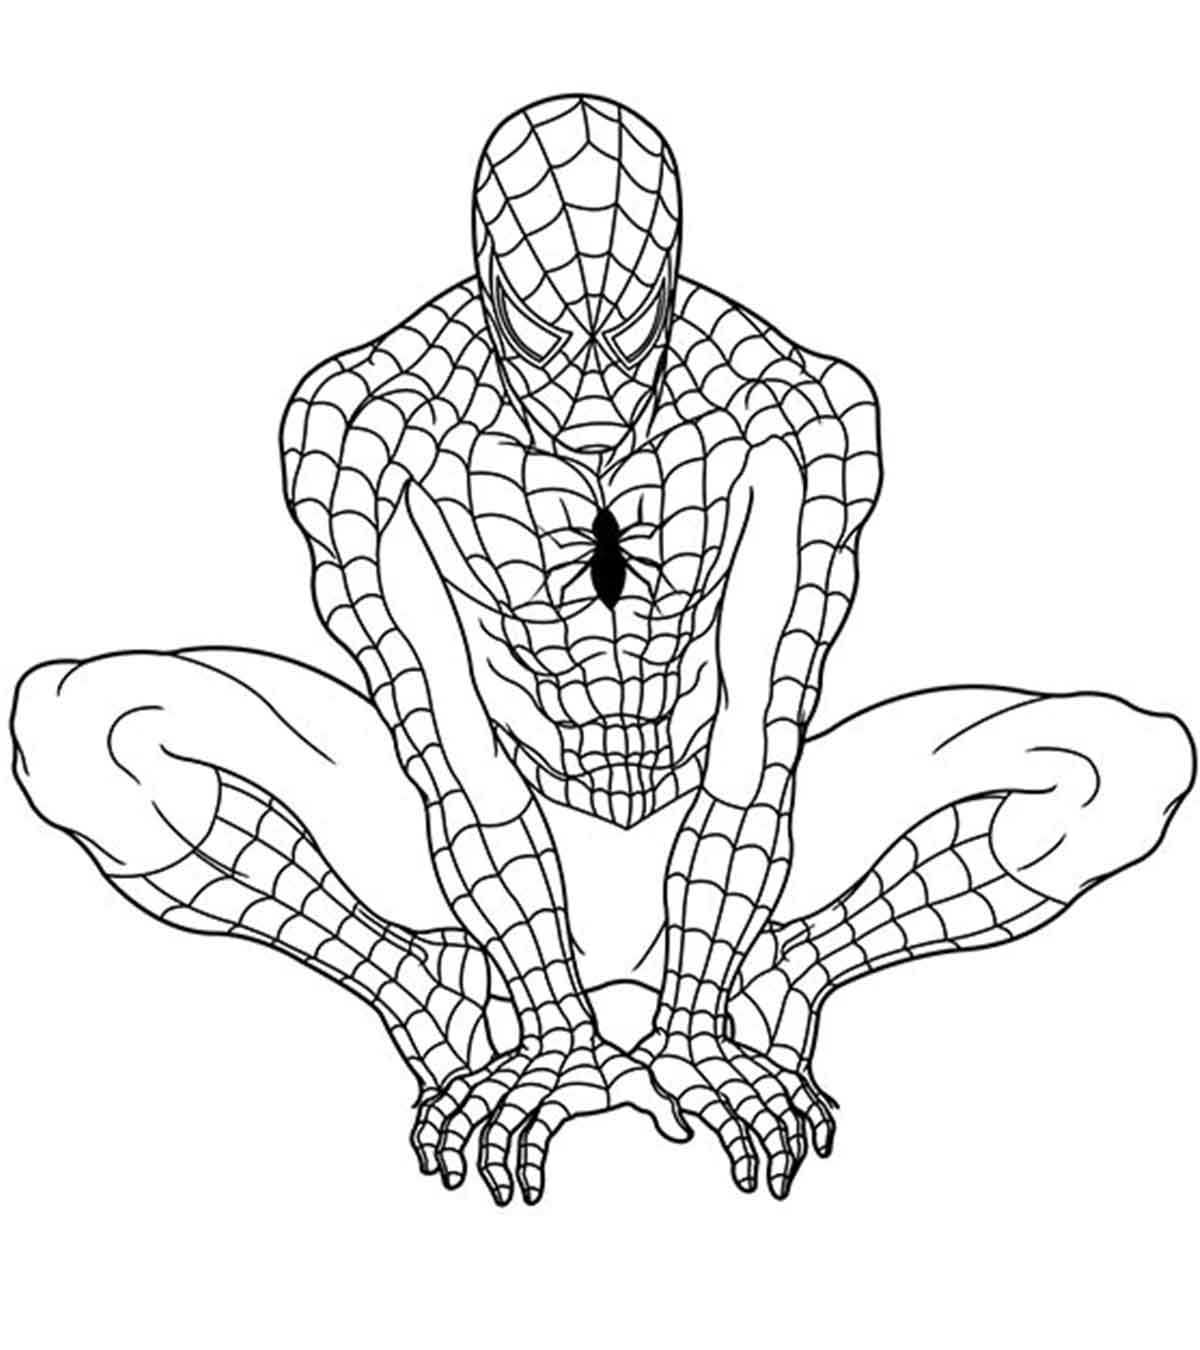 marvel superhero coloring pages superhero coloring pages free printable coloring pages coloring superhero marvel pages